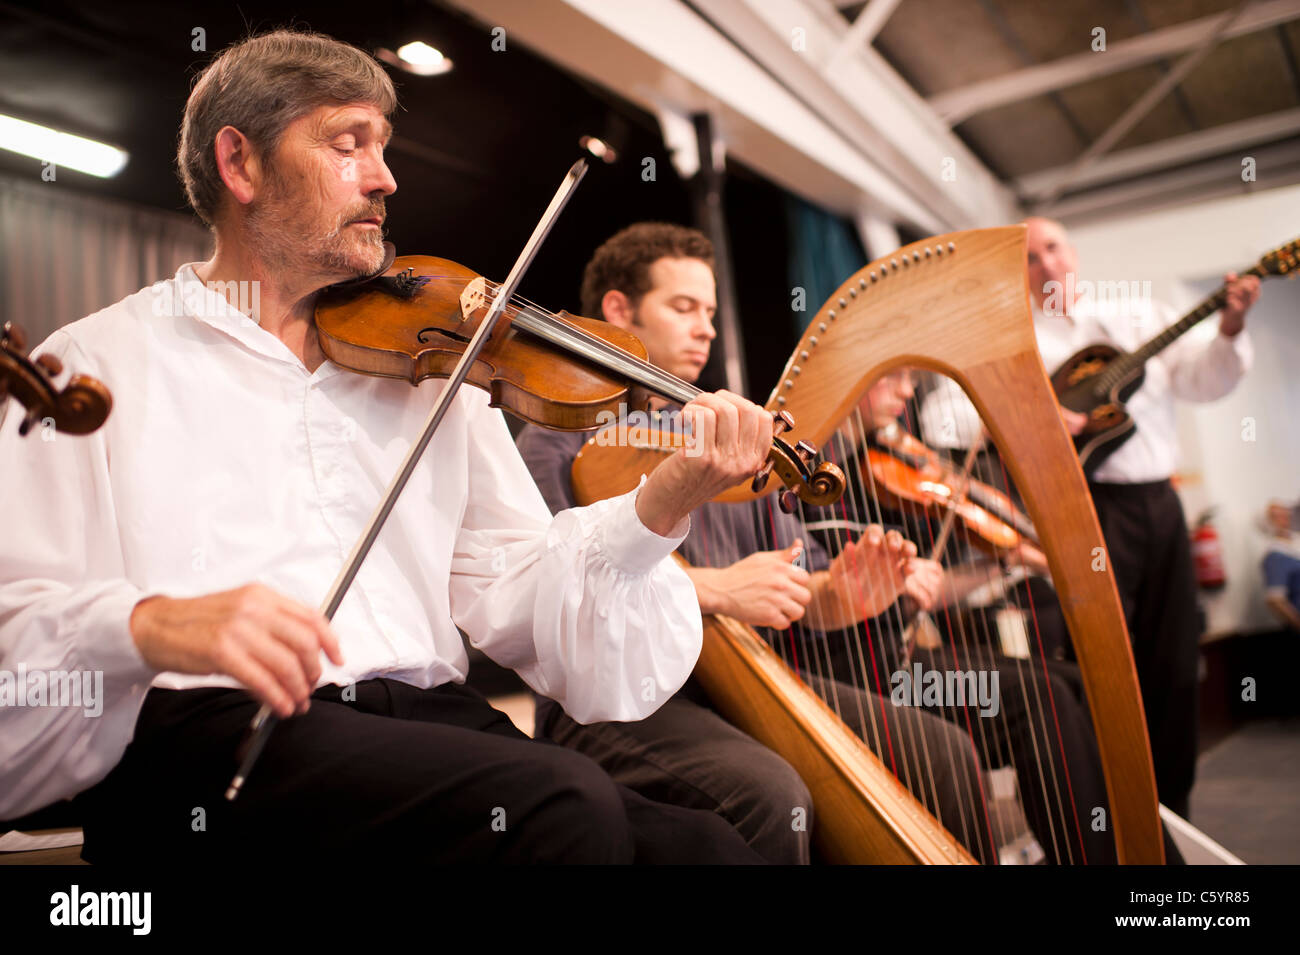 welsh folk musicians playing fiddle and harp, wales uk - Stock Image